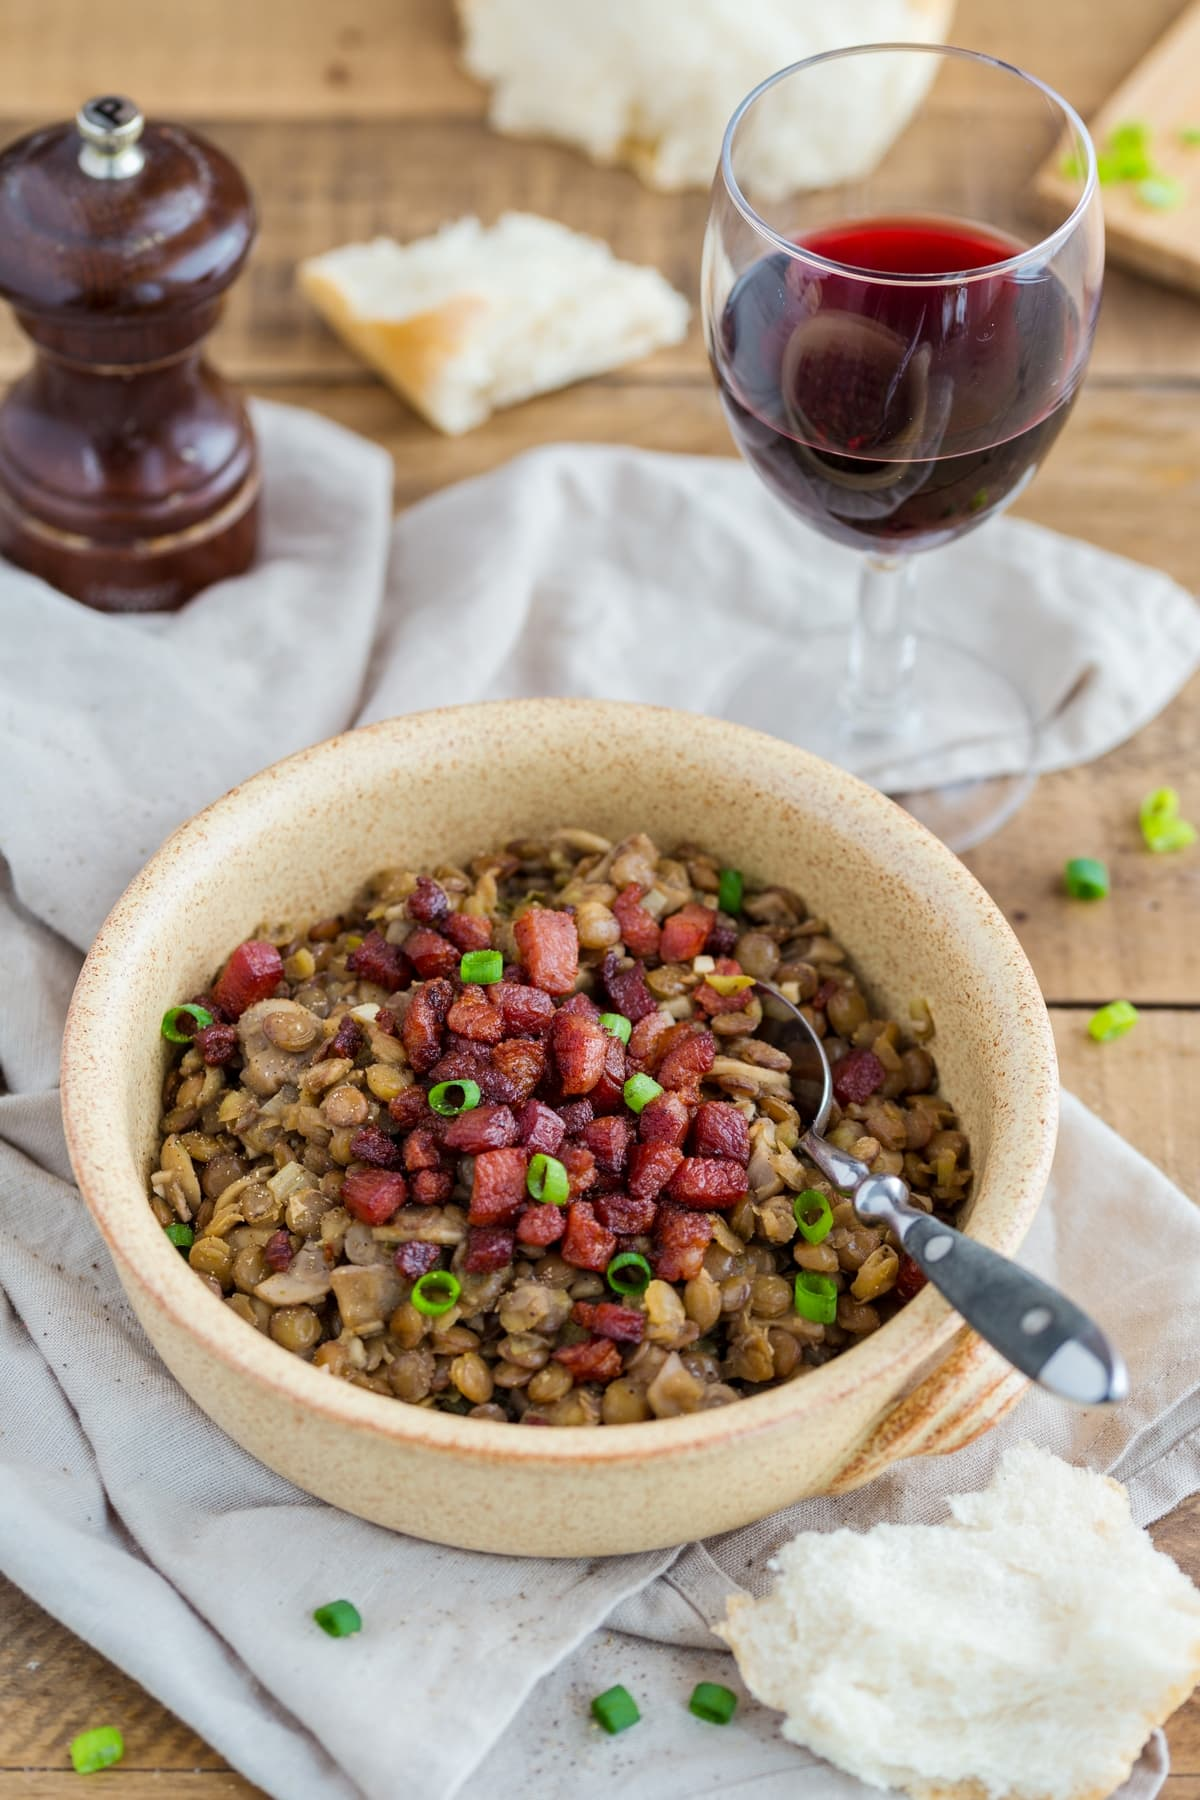 Lentil stew with crispy bacon and mushrooms.